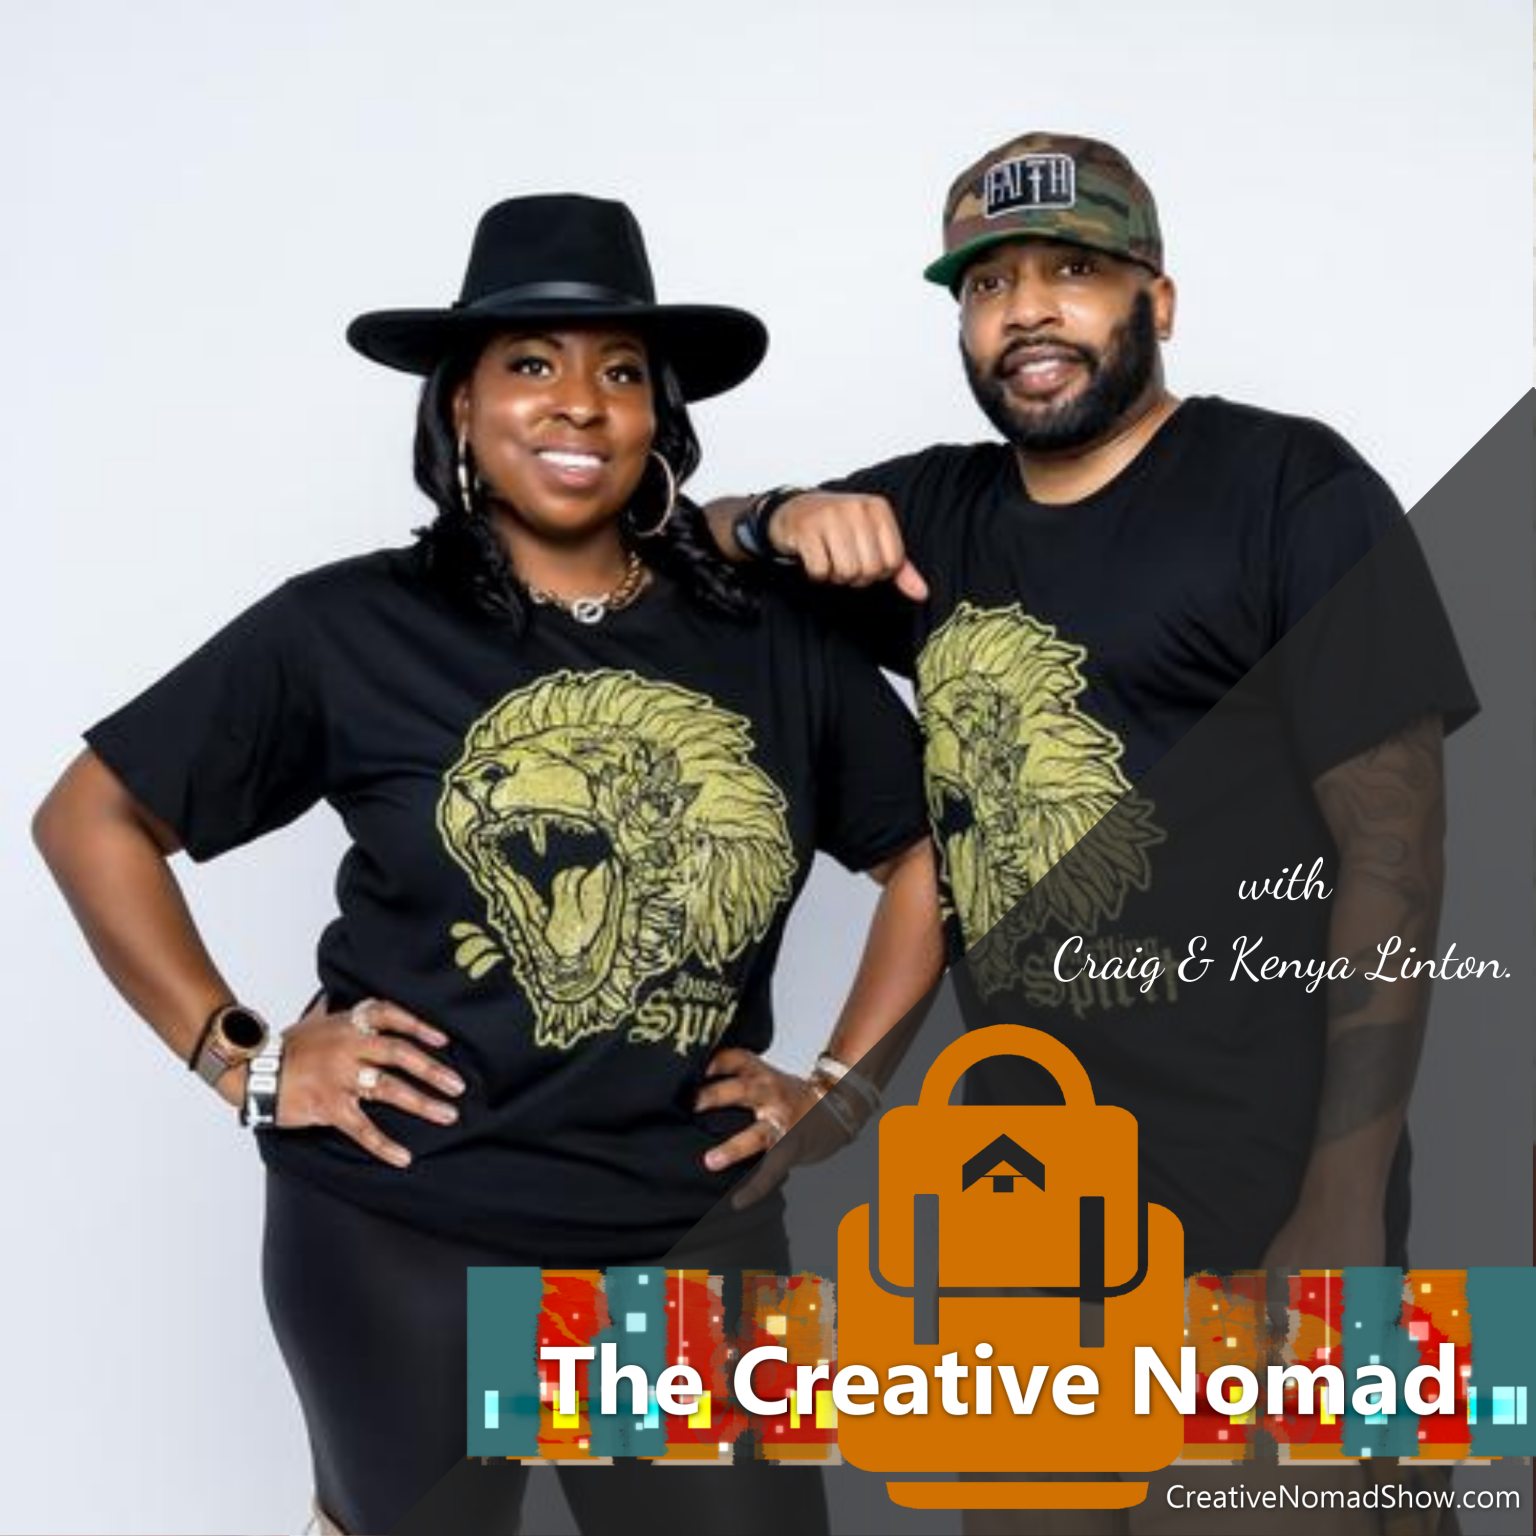 Craig and Kenya on the Creative Nomad Show